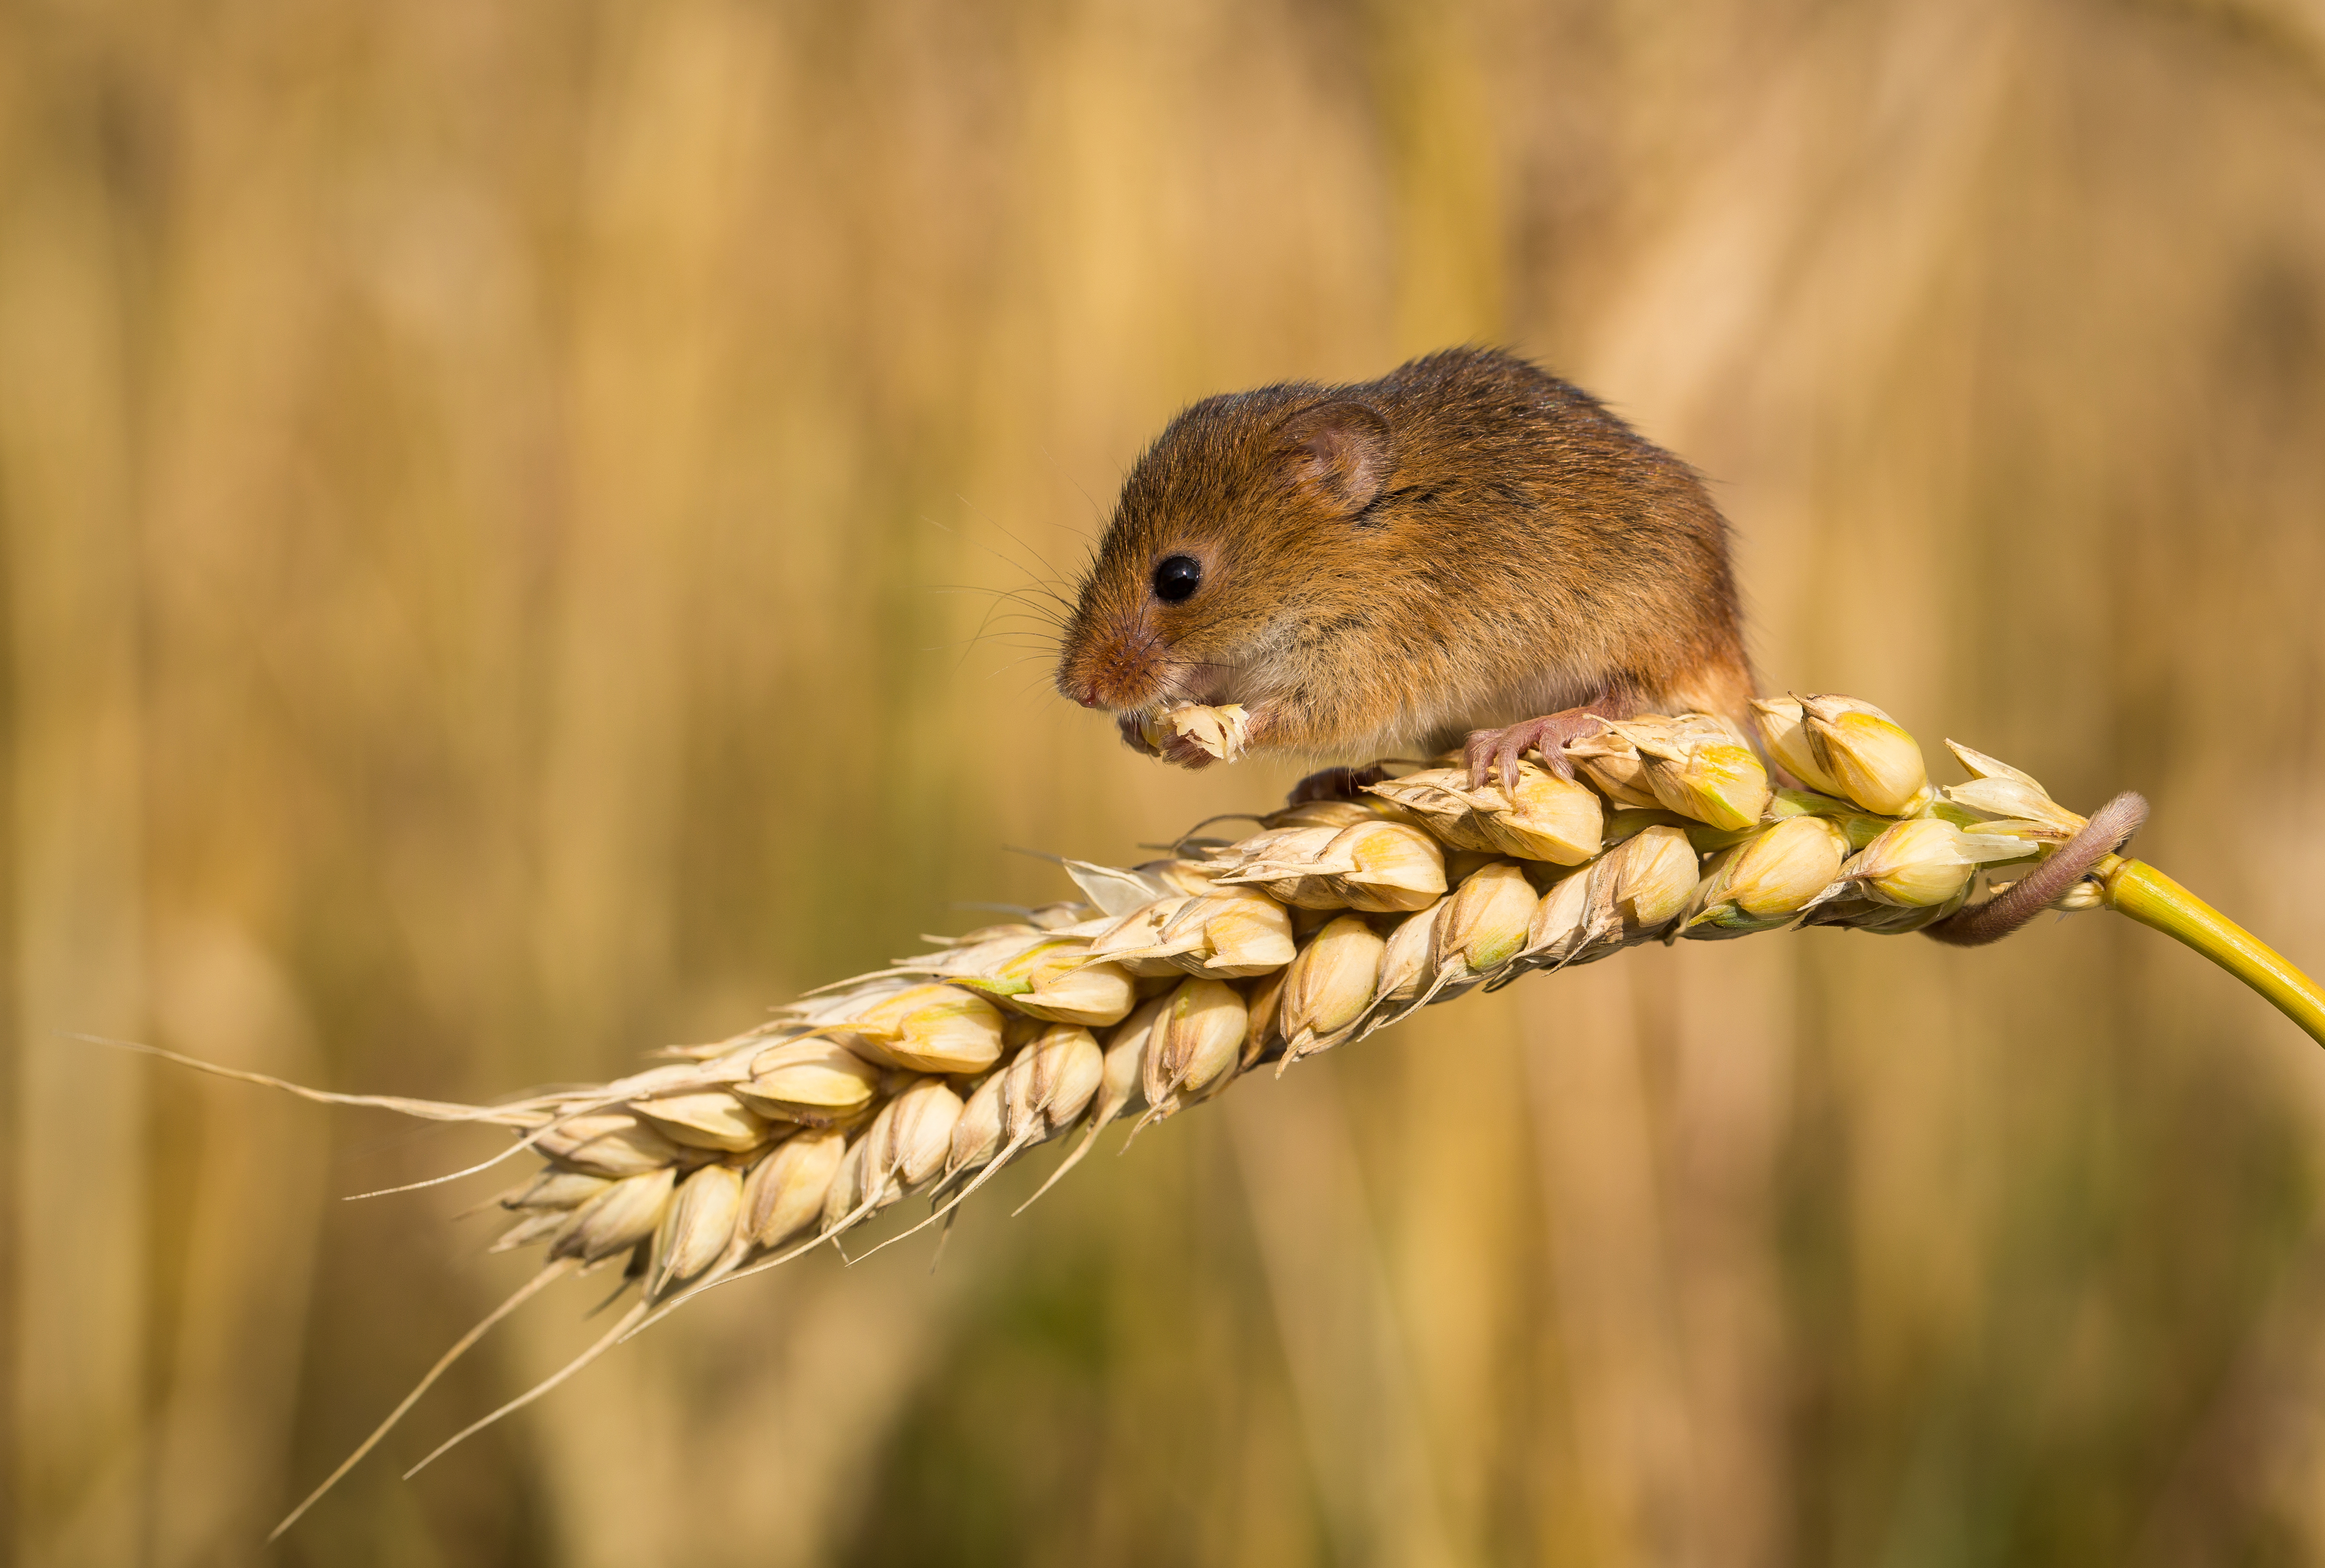 British Ecological Society image of a mouse on wheat